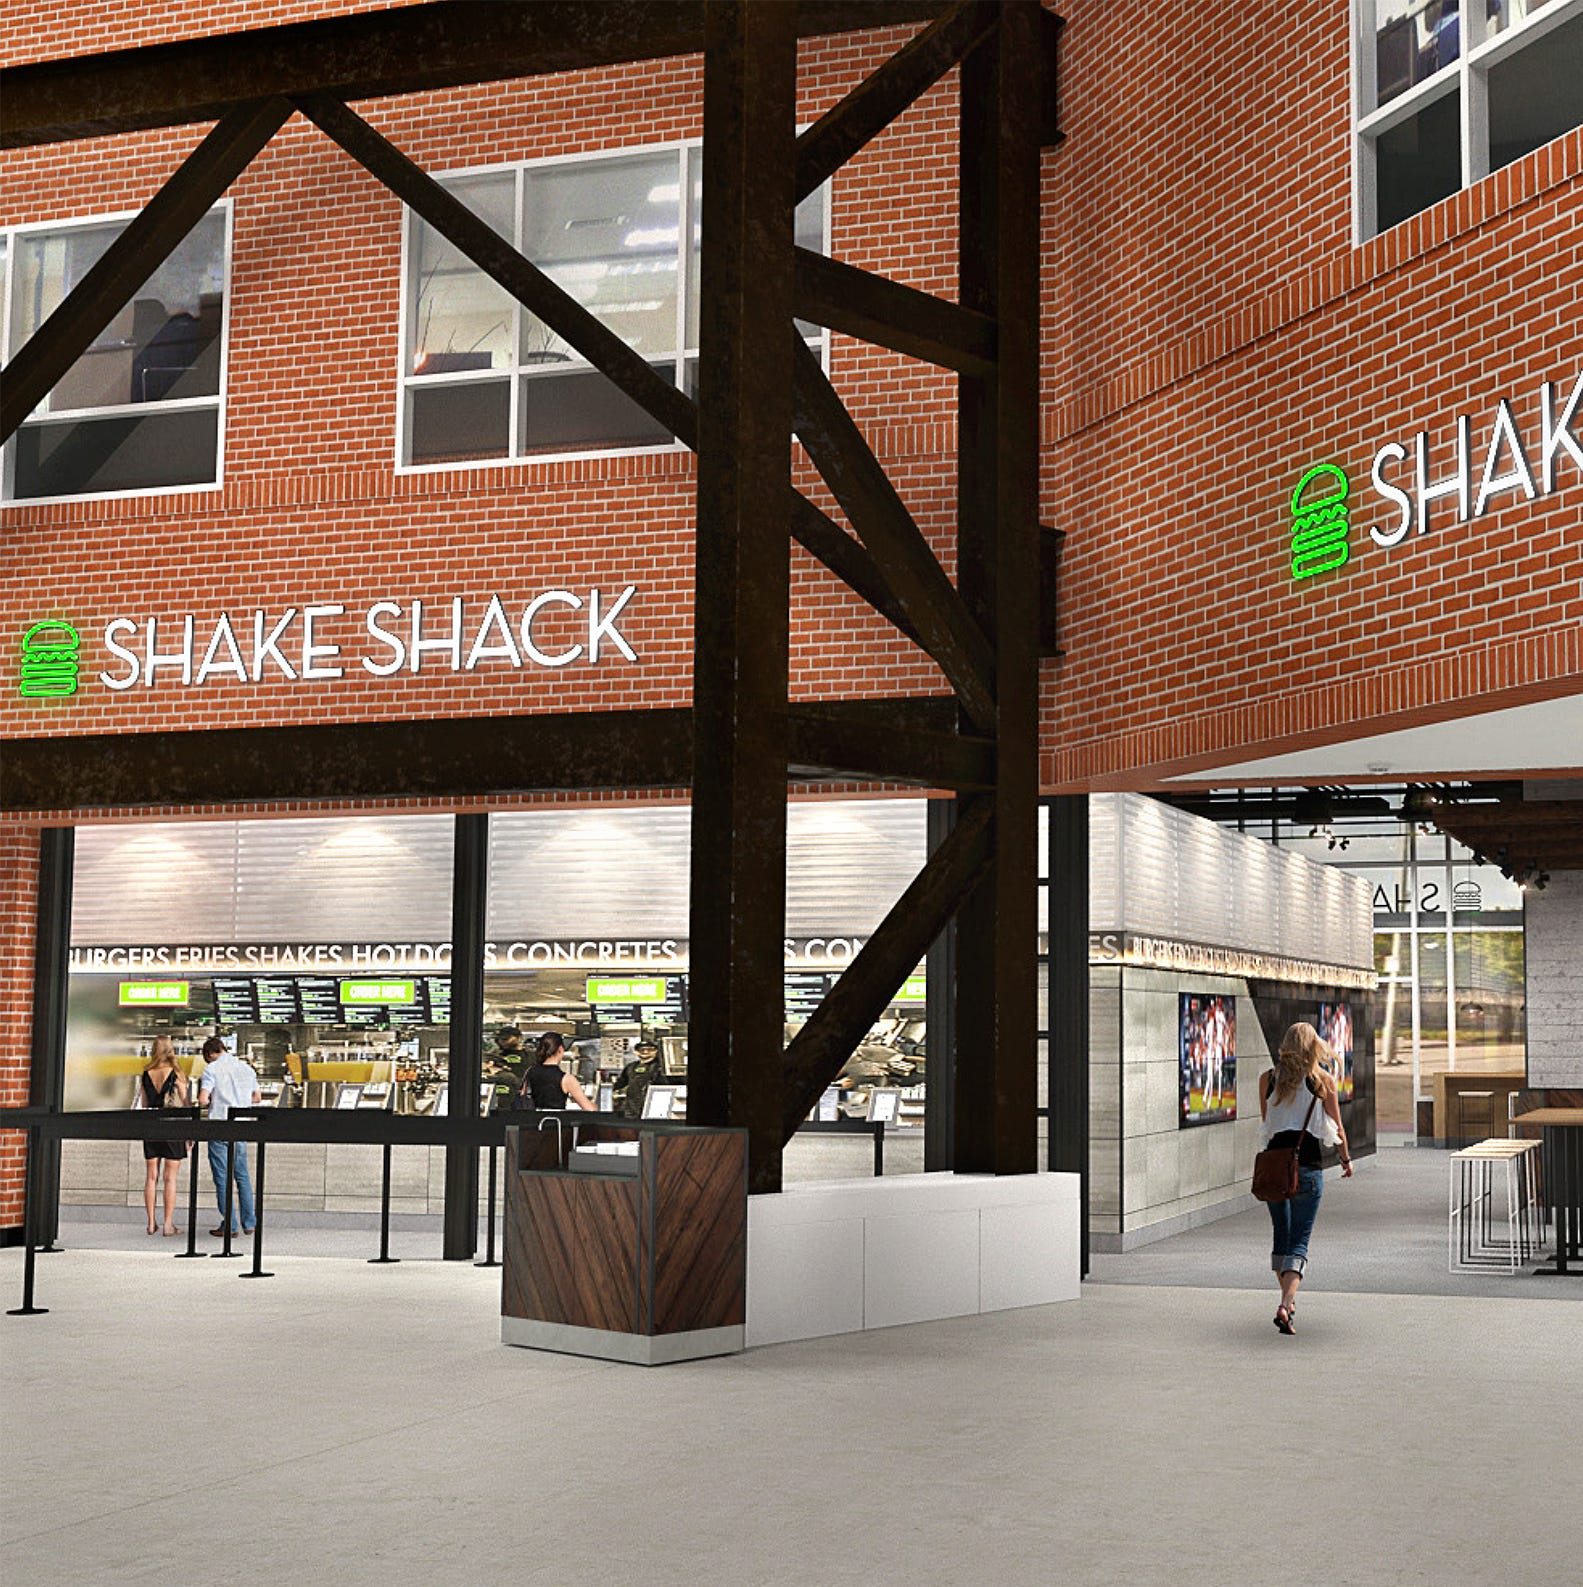 Shake Shack, beer garden among Phillies' ballpark additions for 2019 season